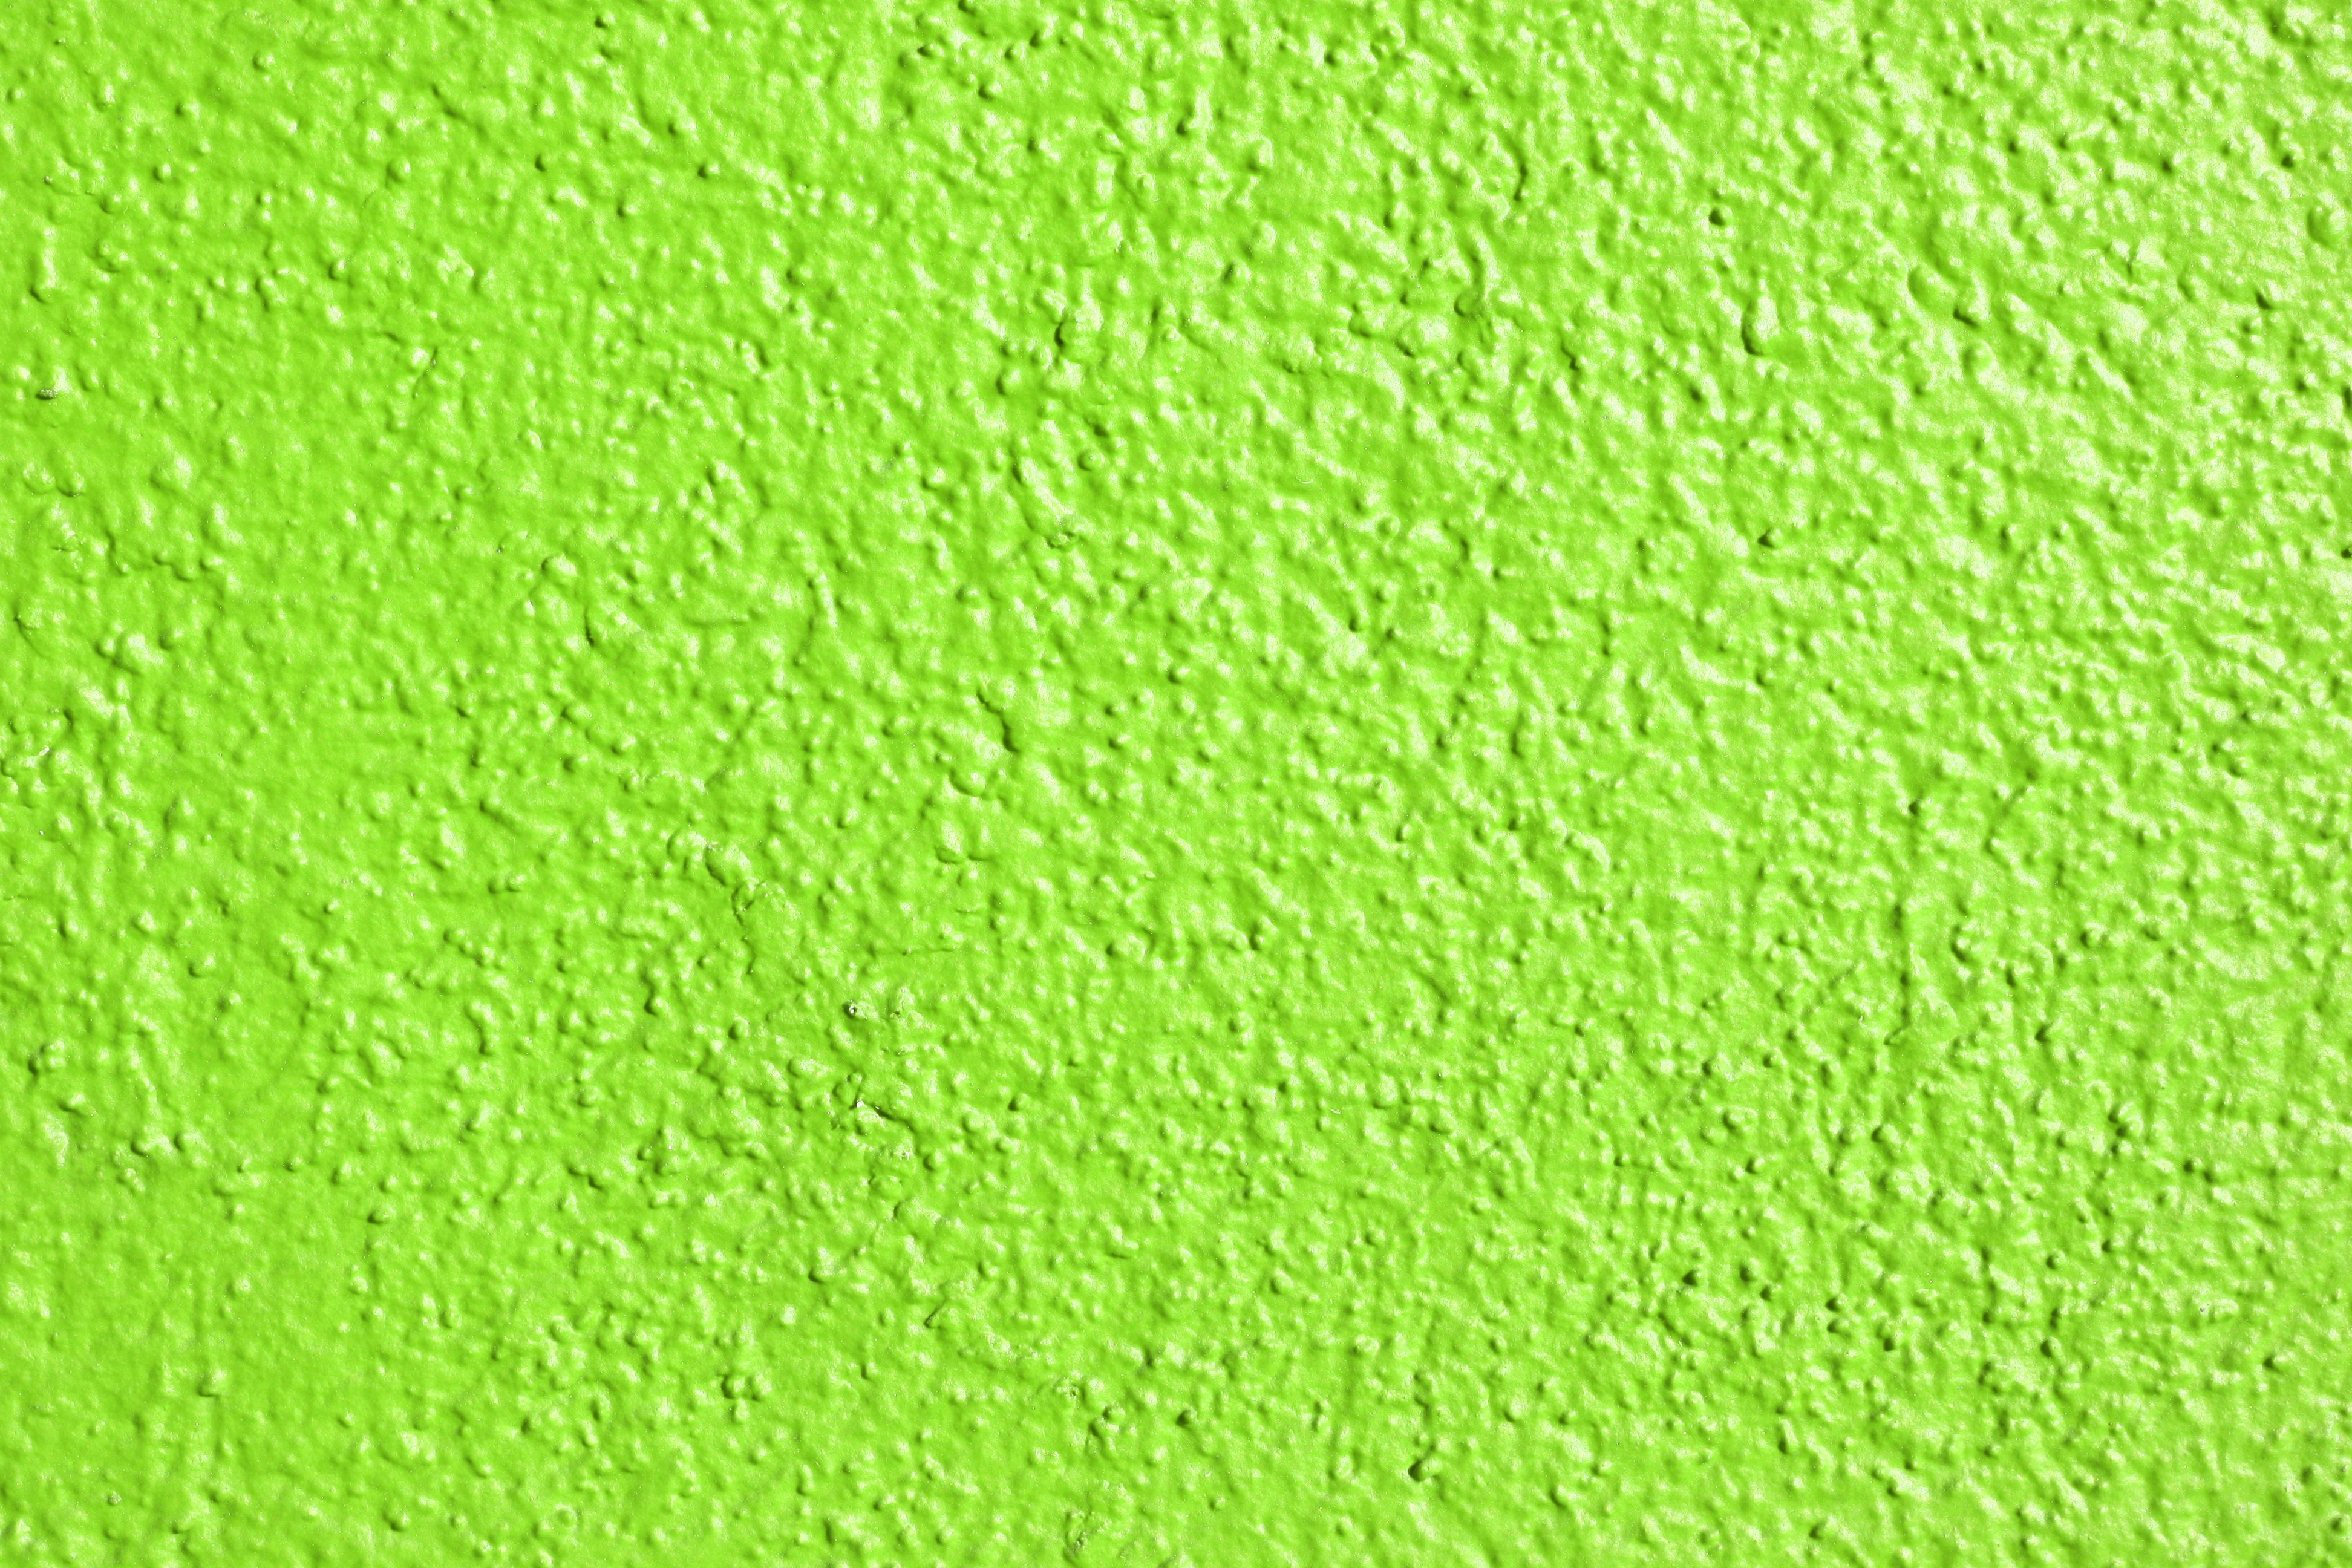 green texture wallpaper from - photo #35